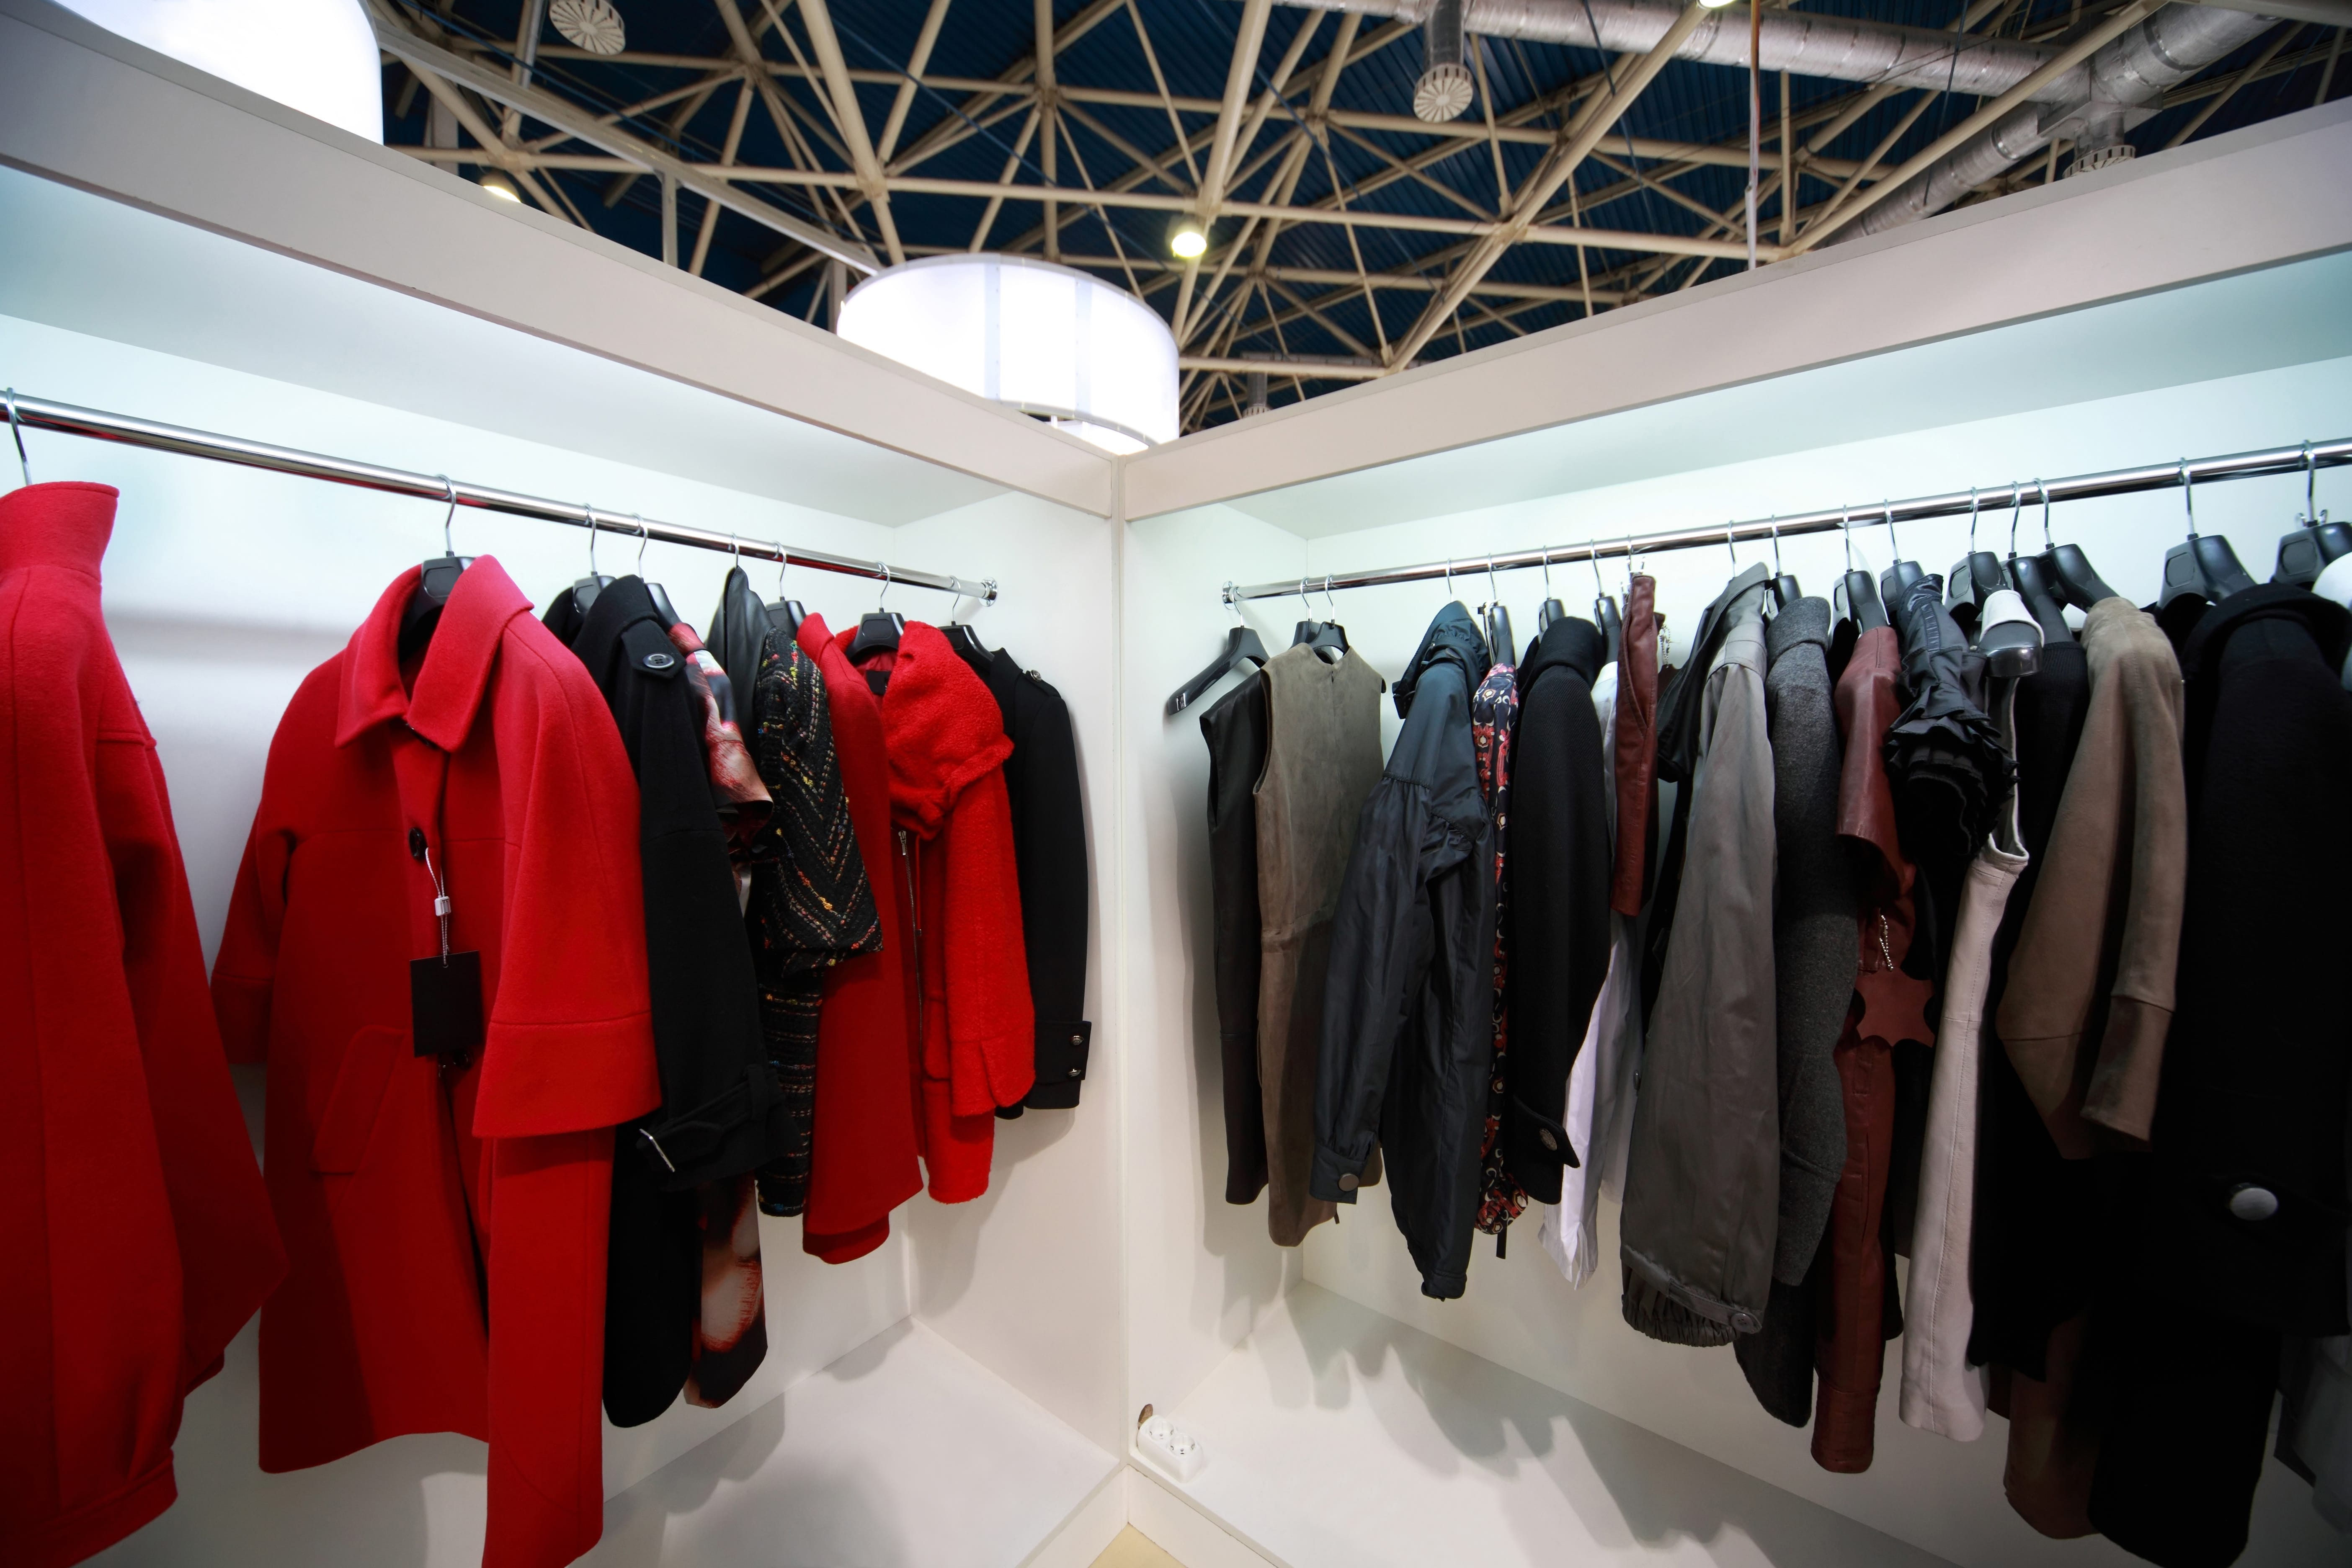 Firm outer clothing hangs at demonstration stands in showroom